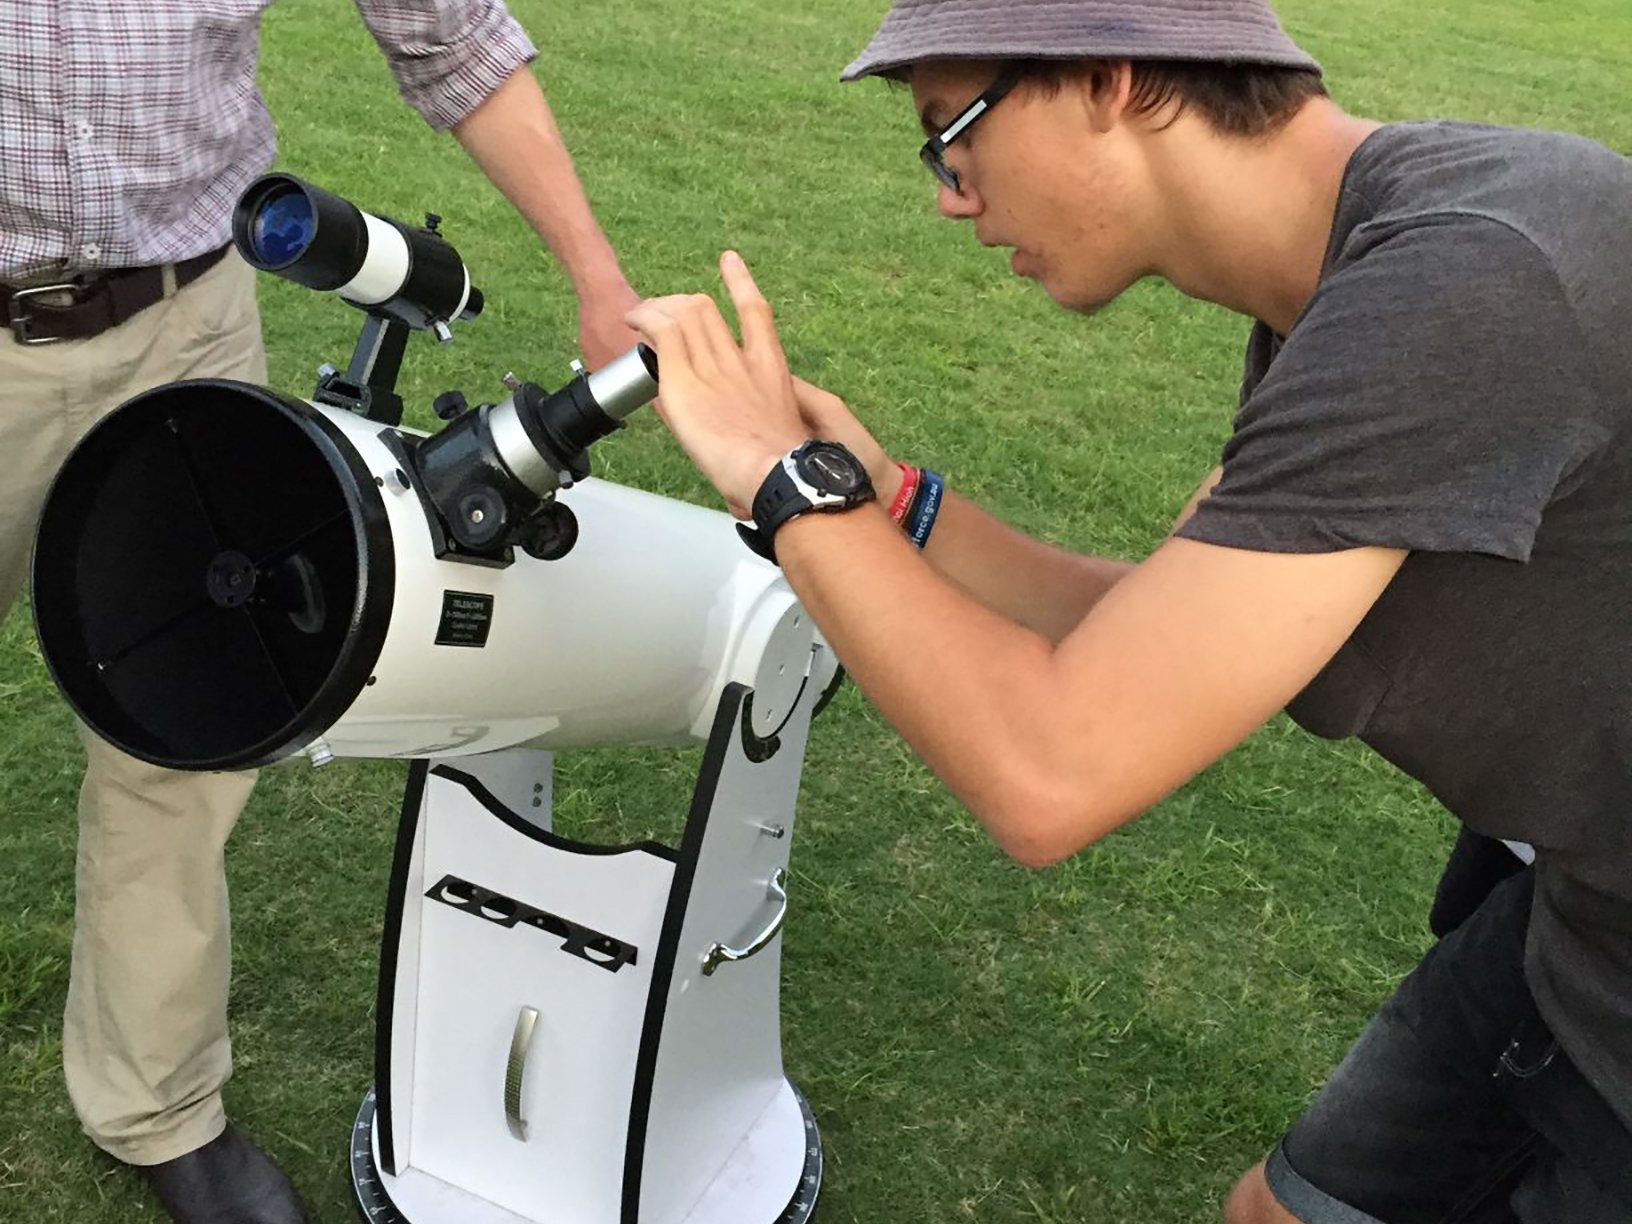 One student takes a photo through the eye piece of a telescope